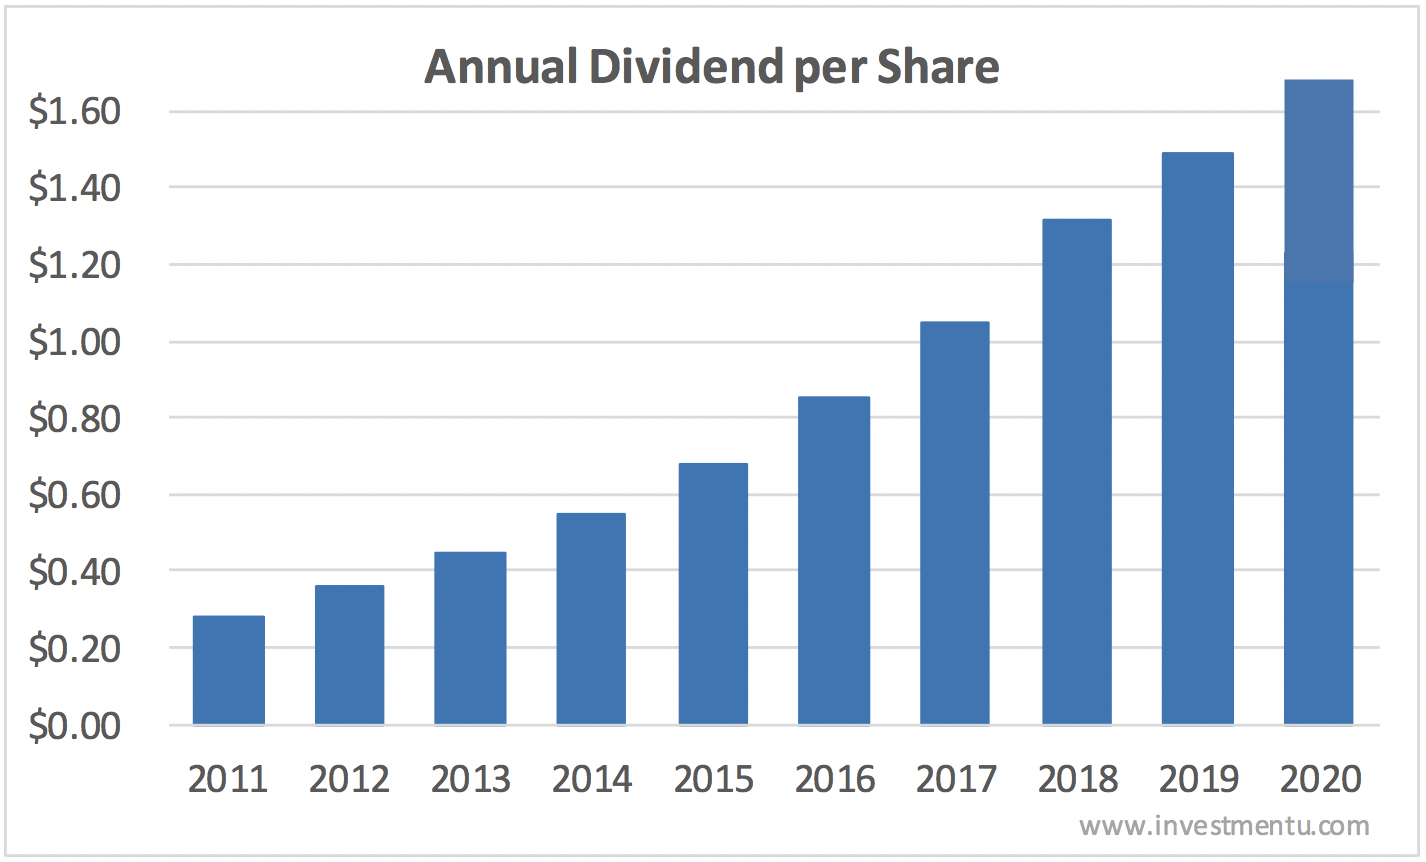 Starbucks dividend history over the last 10 years